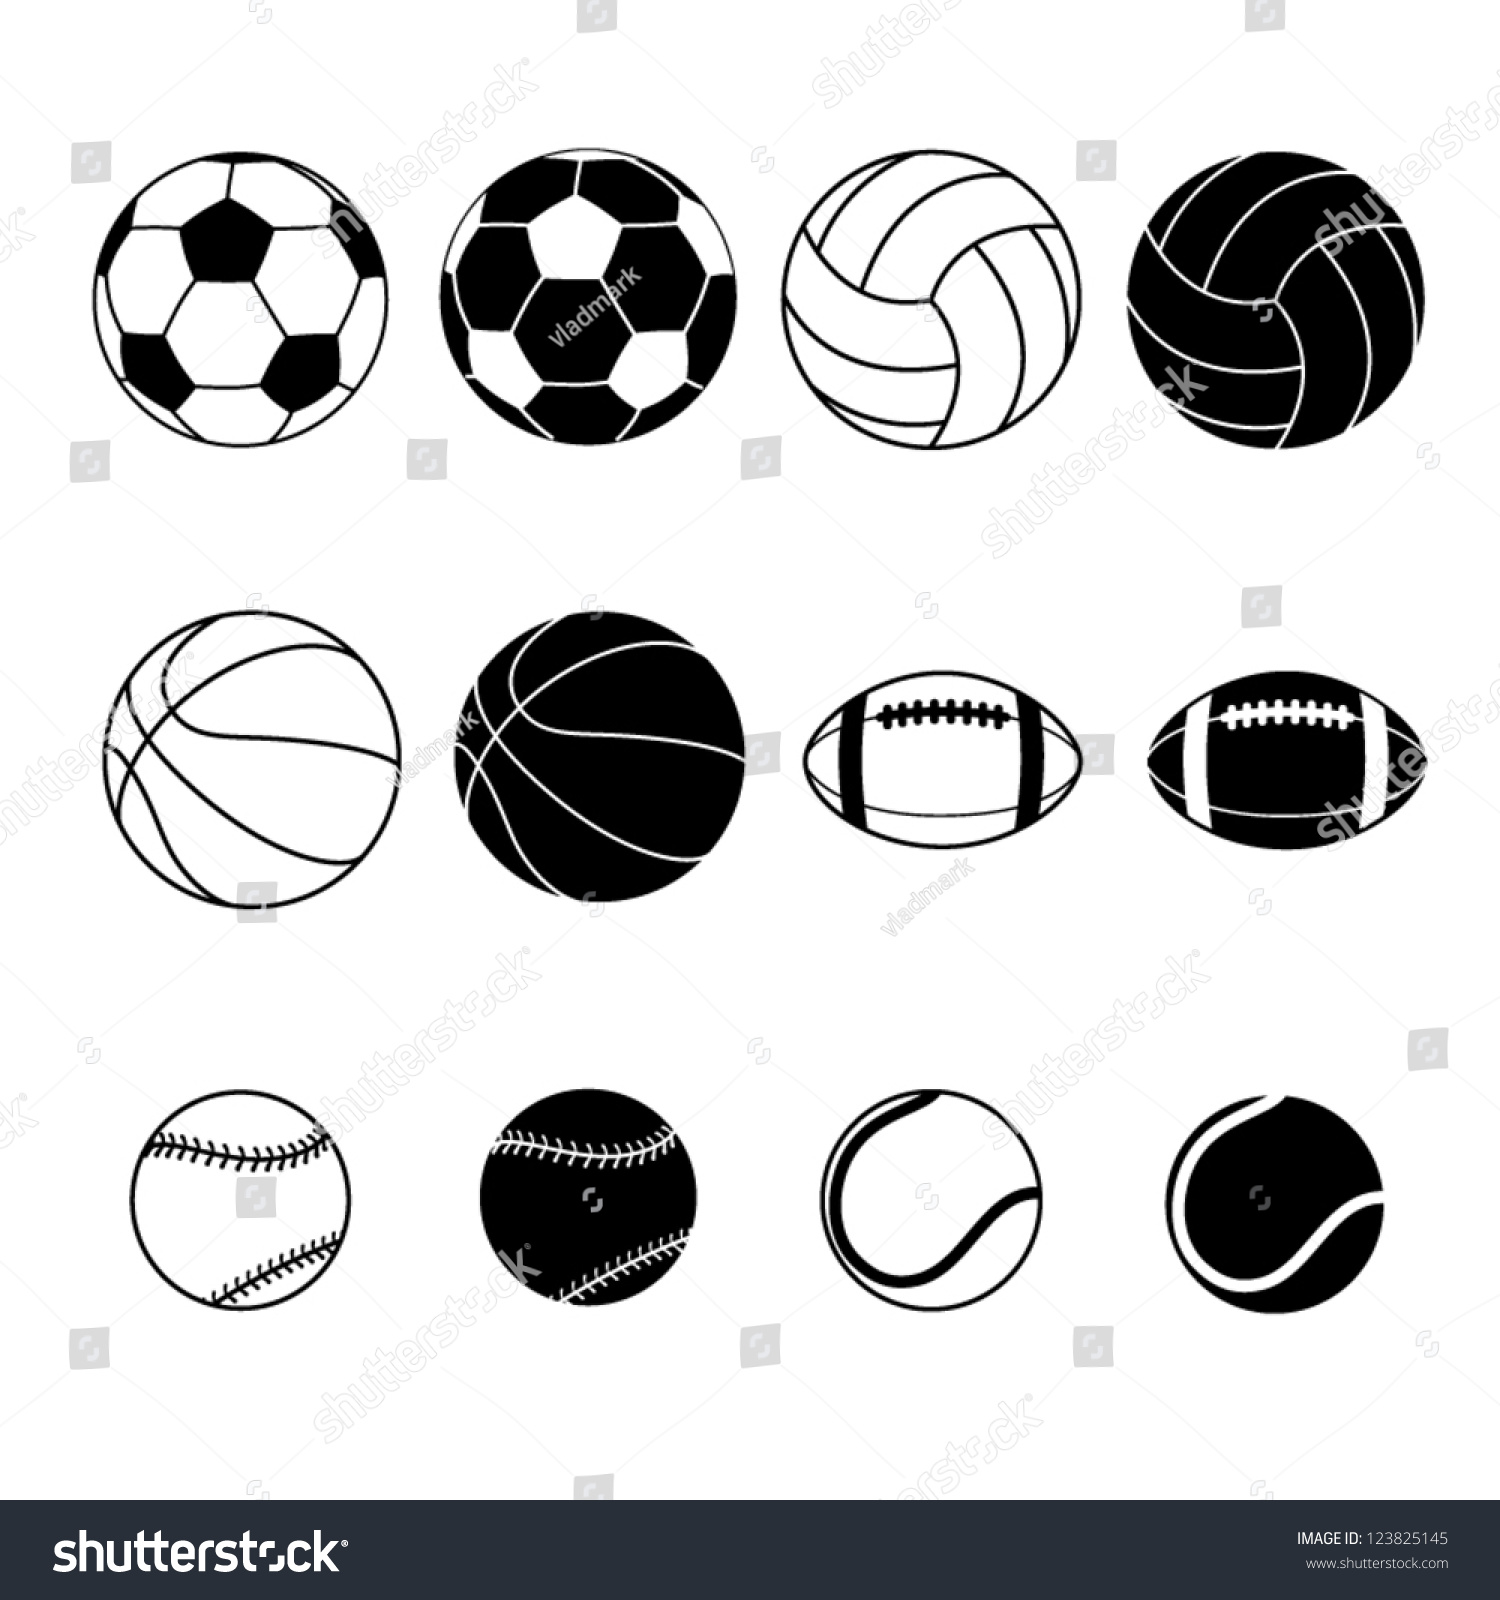 vector sports balls silhouettes silhouette illustration collection sport shutterstock vectors illustrations